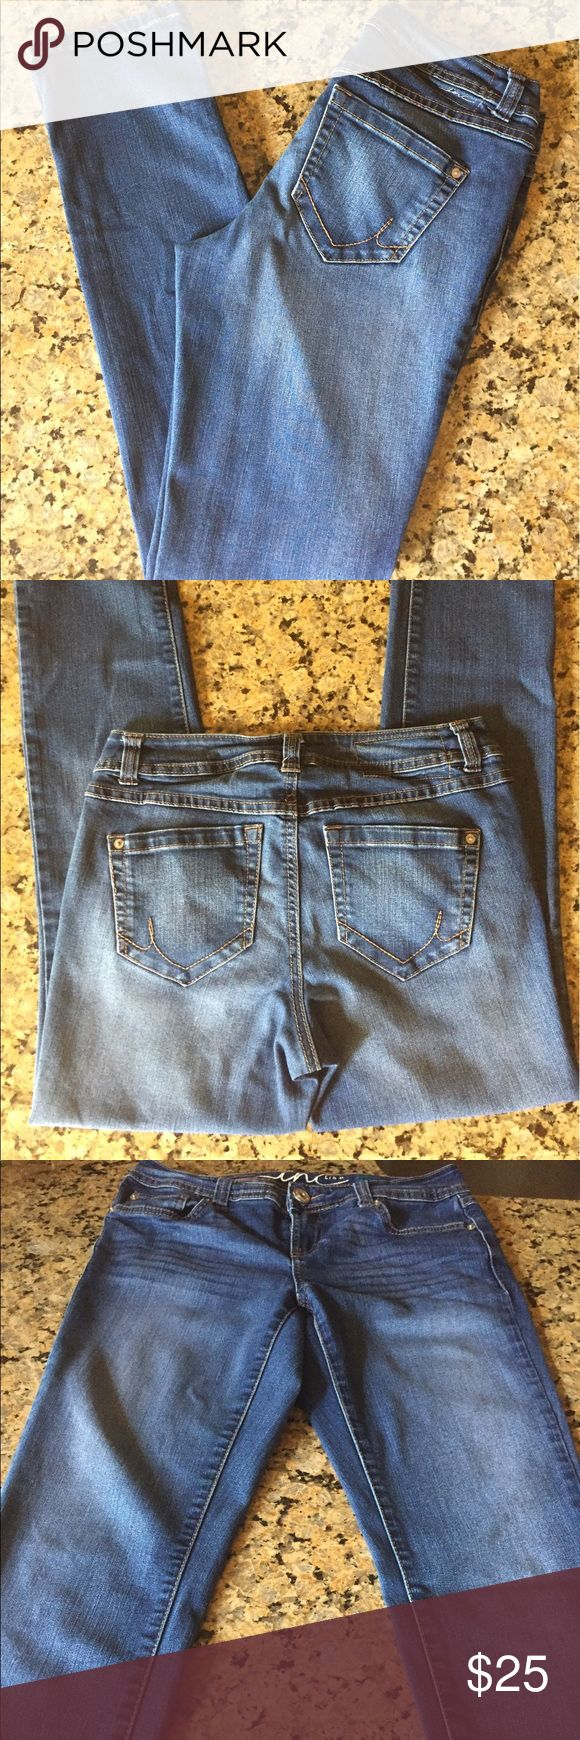 """INC Curvy Skinny Jeans INC Skinny Curvy Jeans. Excellent Condition. Medium Wash. Size 4. Approx 7 1/2"""" Rise & 30"""" Inseam. INC International Concepts Jeans Skinny"""